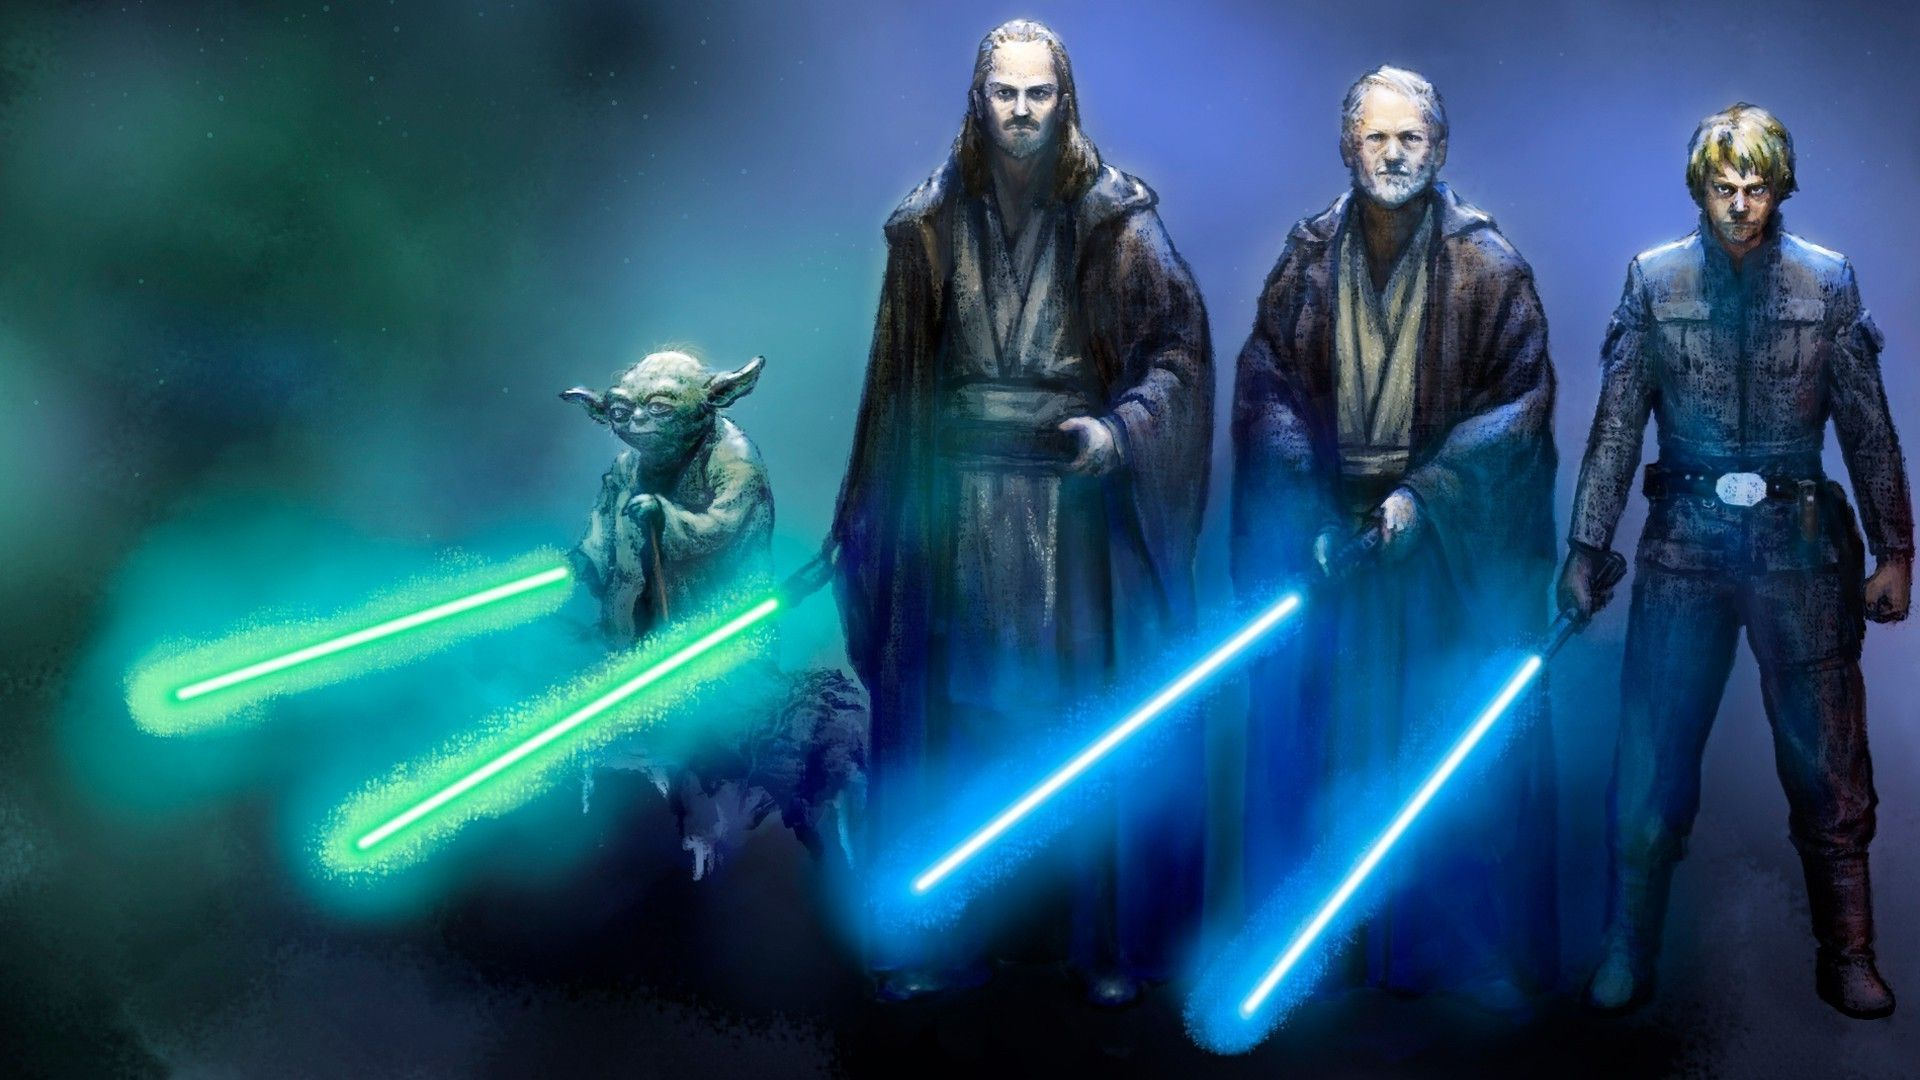 movie wallpaper tagzeo mobile star wars high resolution pictures k